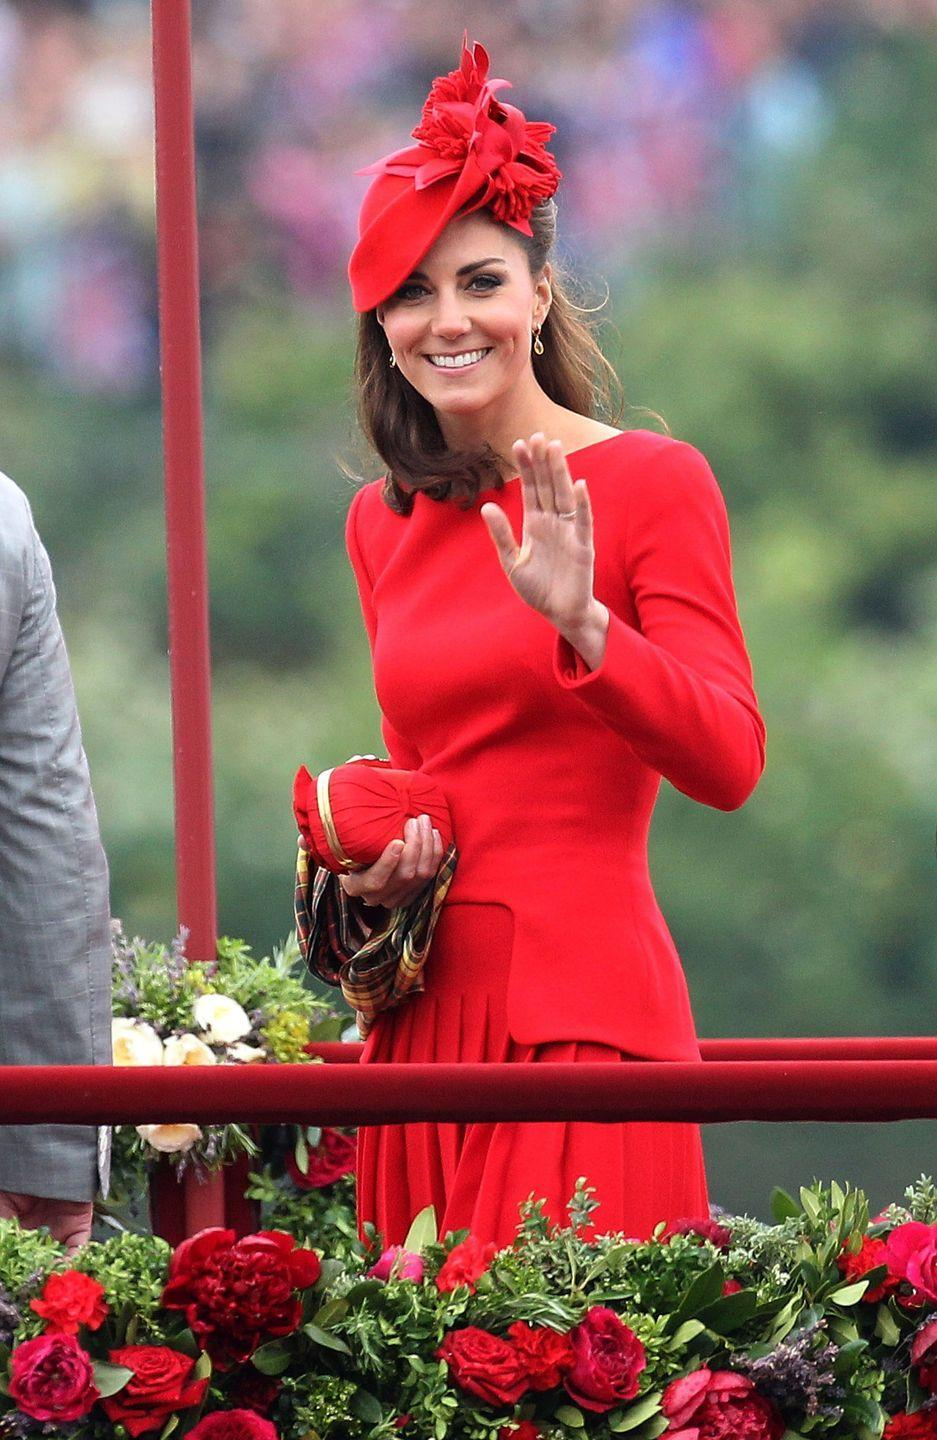 """<p> """"She needs to stand out for people to be able to say, 'I saw the Queen,'"""" <a href=""""https://www.townandcountrymag.com/society/tradition/news/a8027/kate-middleton-bright-colors/"""" rel=""""nofollow noopener"""" target=""""_blank"""" data-ylk=""""slk:Sophie the Countess of Wessex explained"""" class=""""link rapid-noclick-resp"""">Sophie the Countess of Wessex explained</a> in the documentary <em>The Queen at 90</em>. </p><p>And it seems like the Queen has passed this advice on to the future Queen, Kate Middleton. The Duchess has never been one to shy away from color, and in recent years, she's been going even brighter and brighter.</p>"""